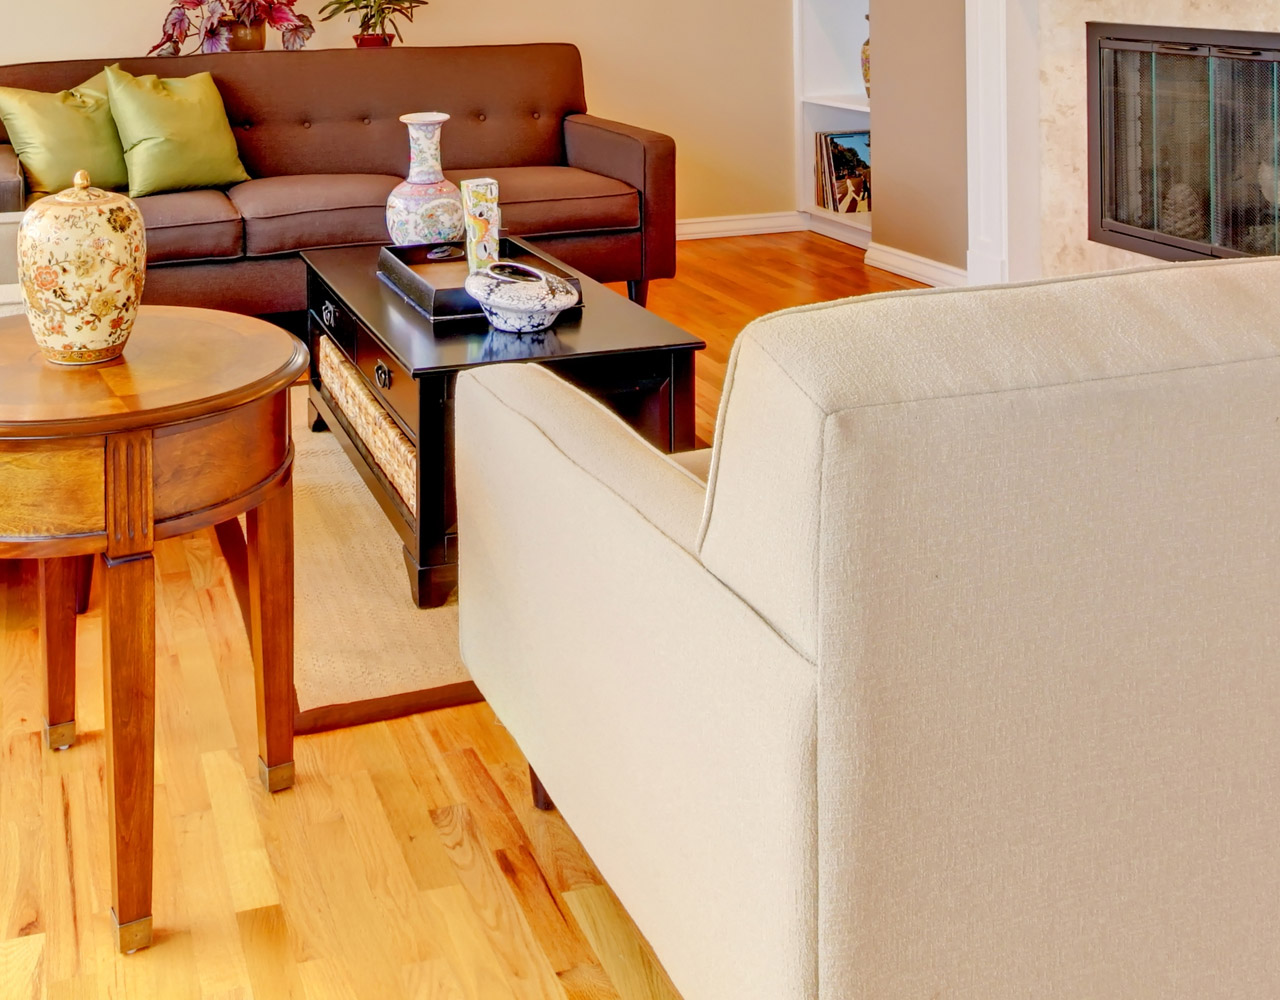 Reasons Why You Should Shop For Furniture Online